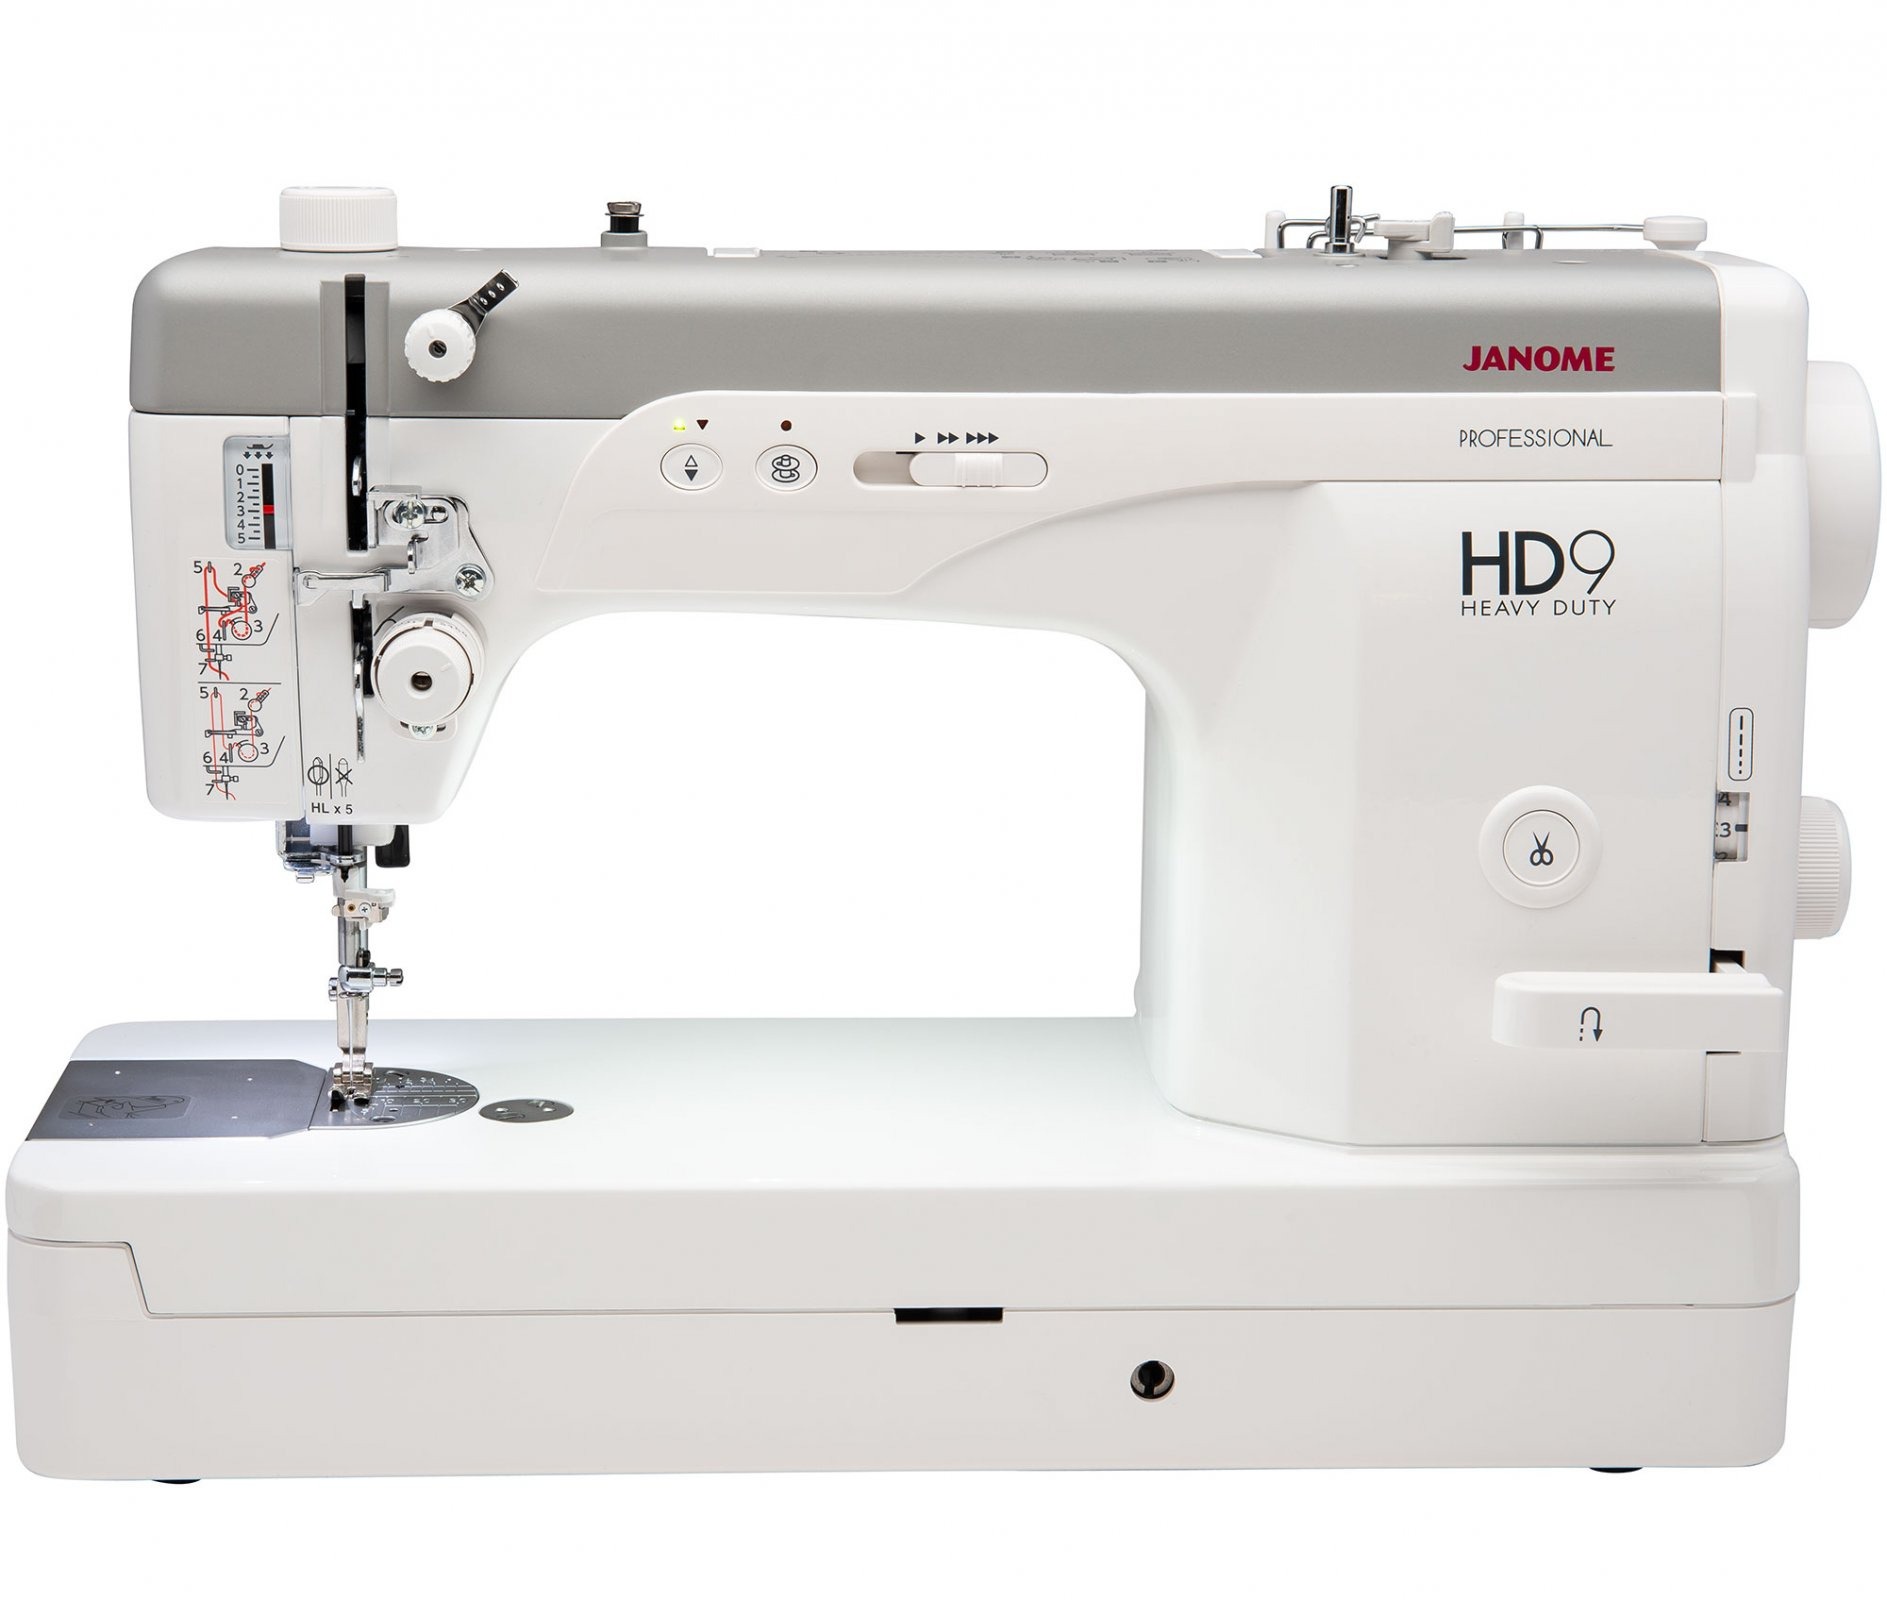 Janome HD9 Professional Sewing & Quilting Machine